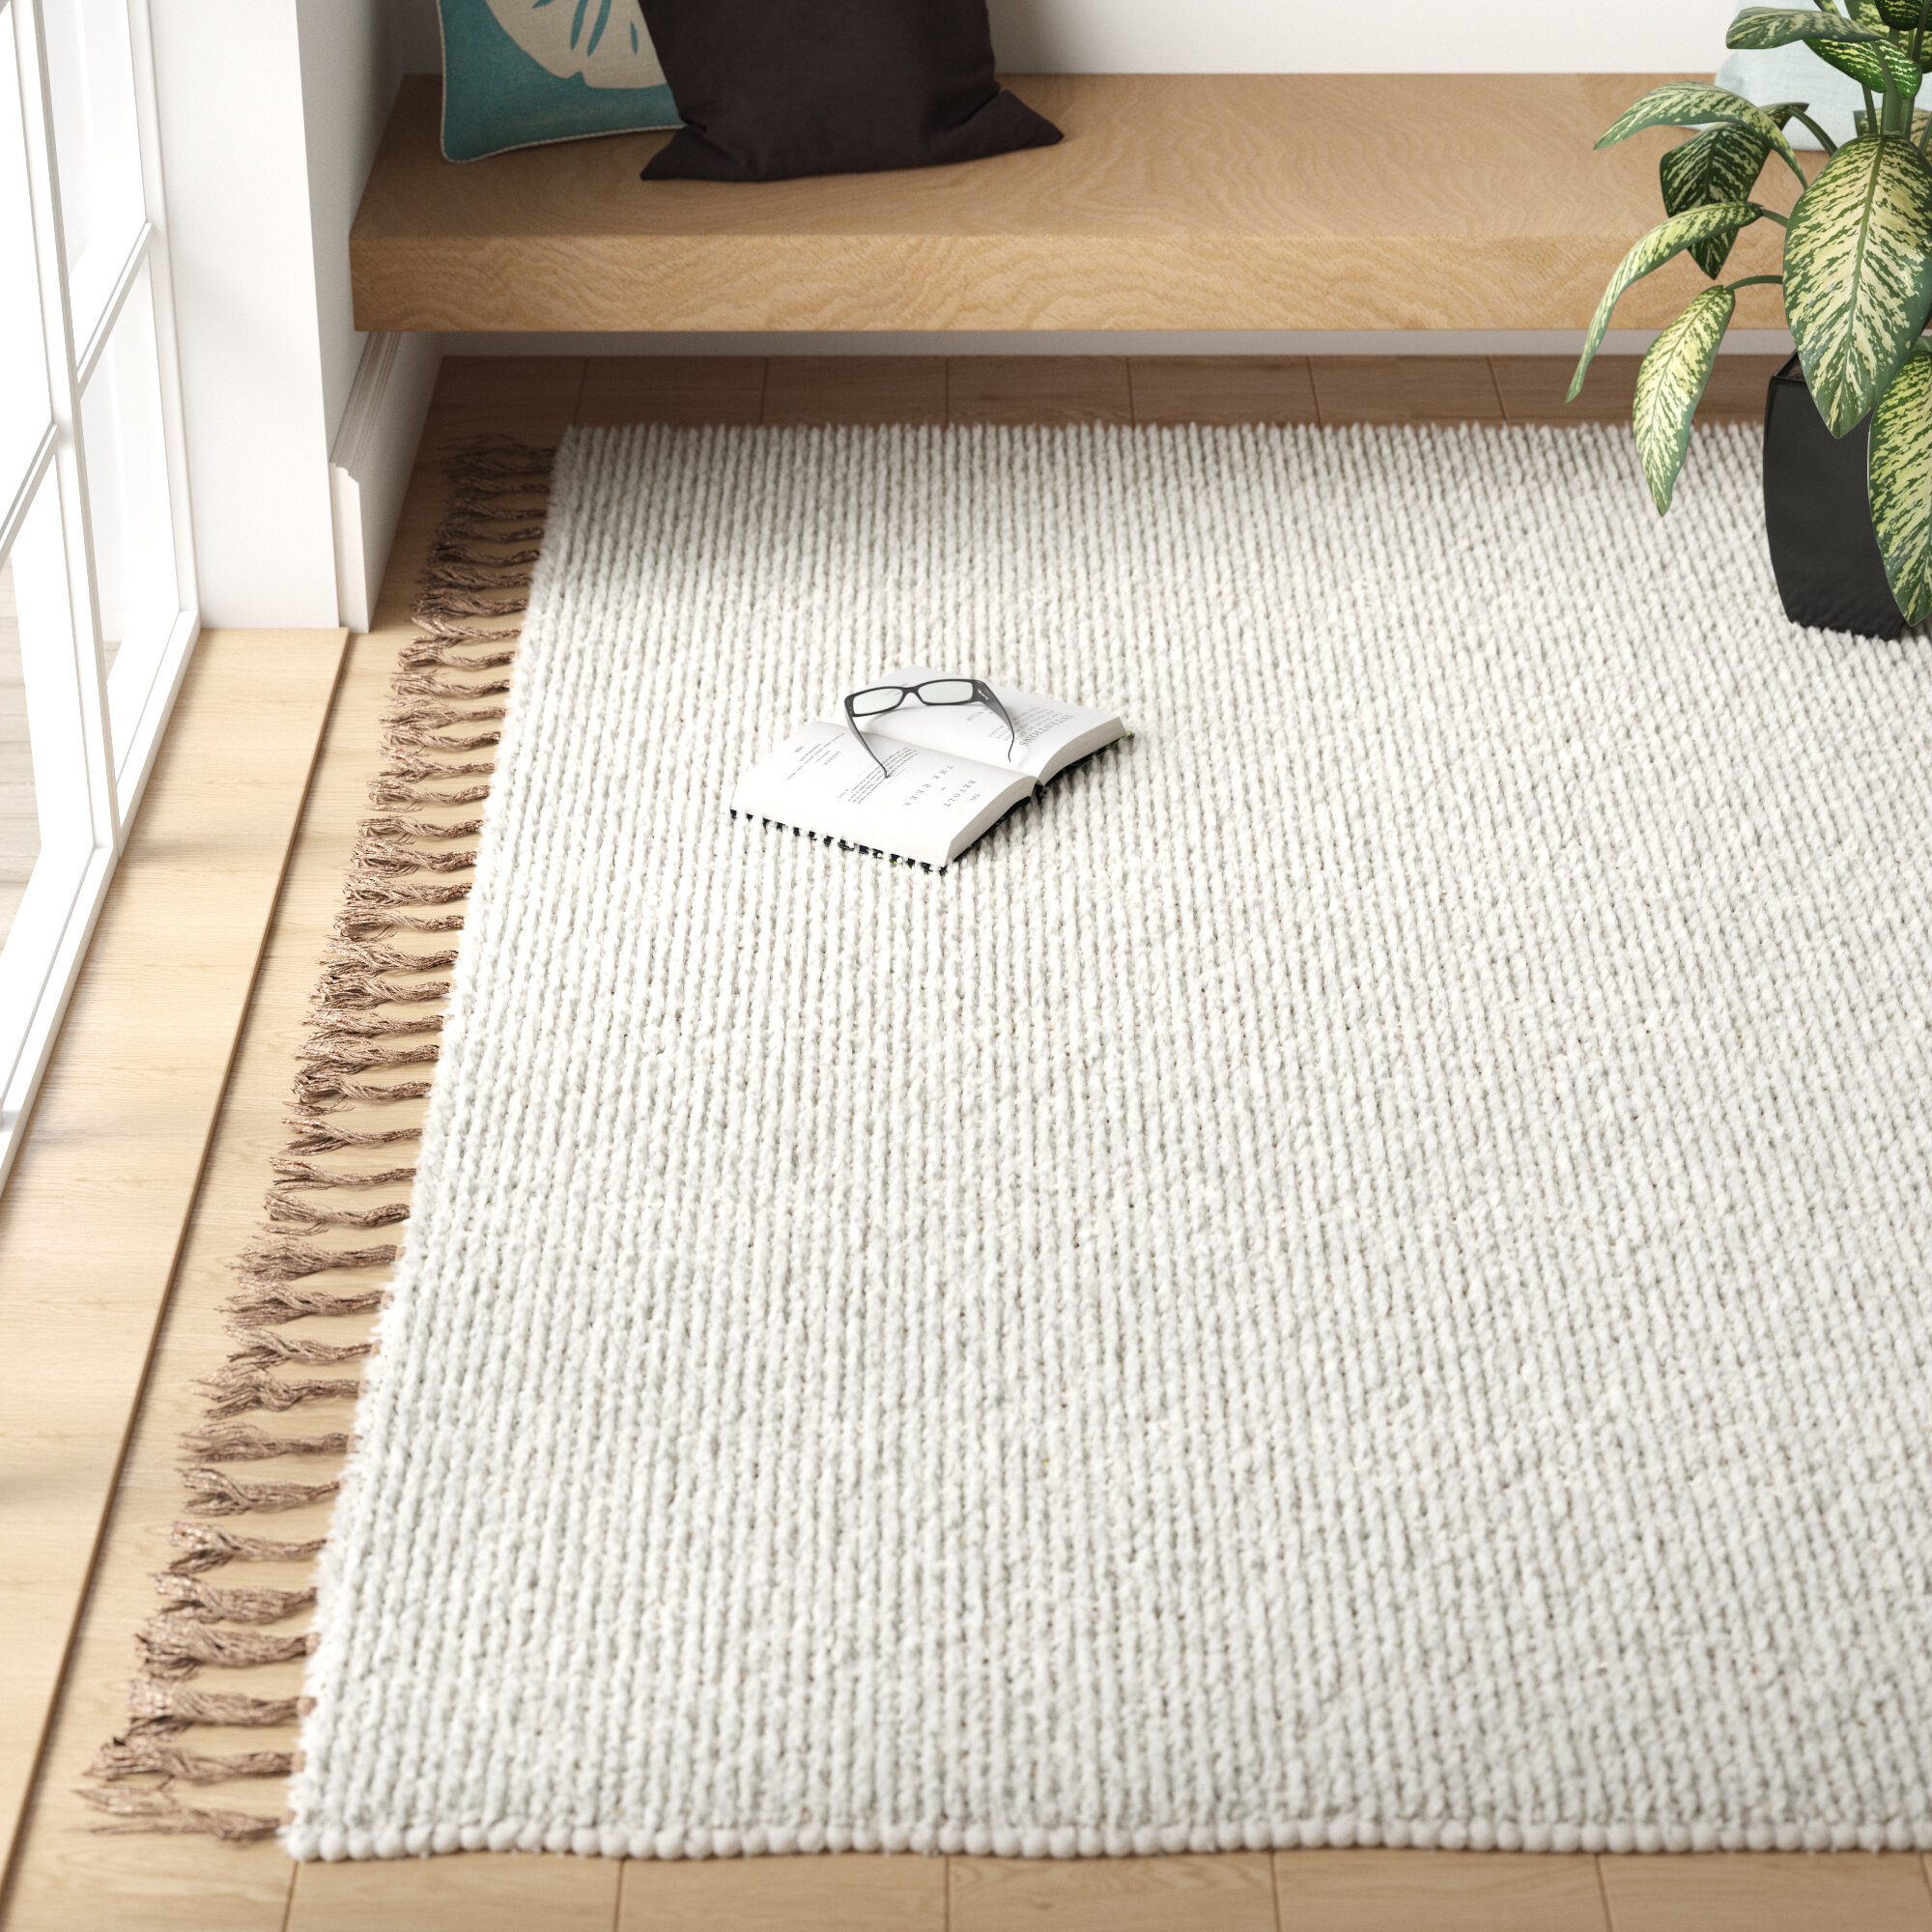 Wool Highland Dunes Area Rugs You Ll Love In 2021 Wayfair